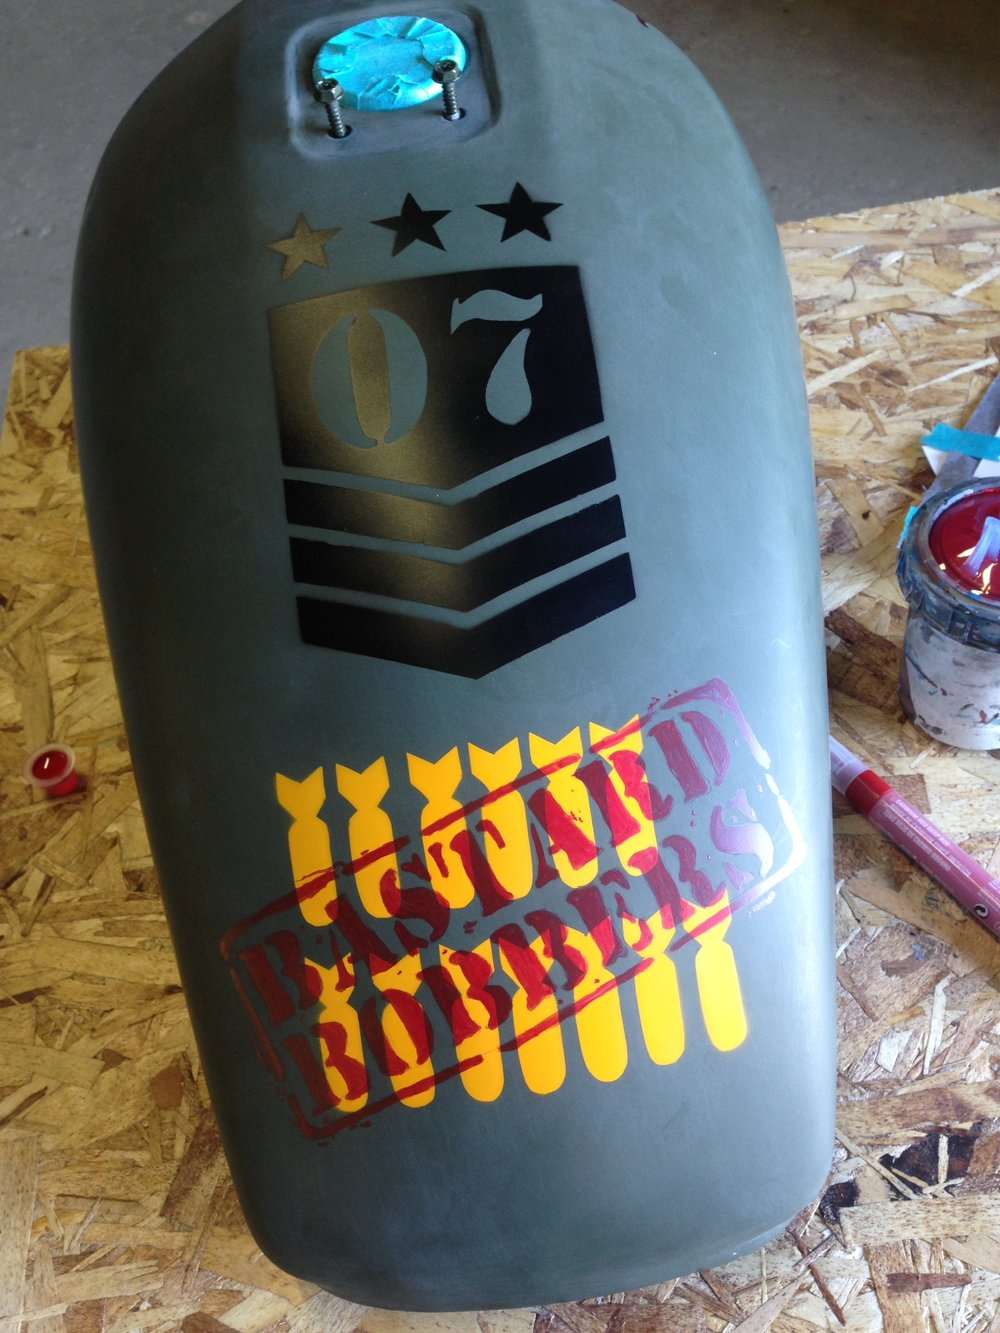 The badly done stencils give the authentic spray-painty look.